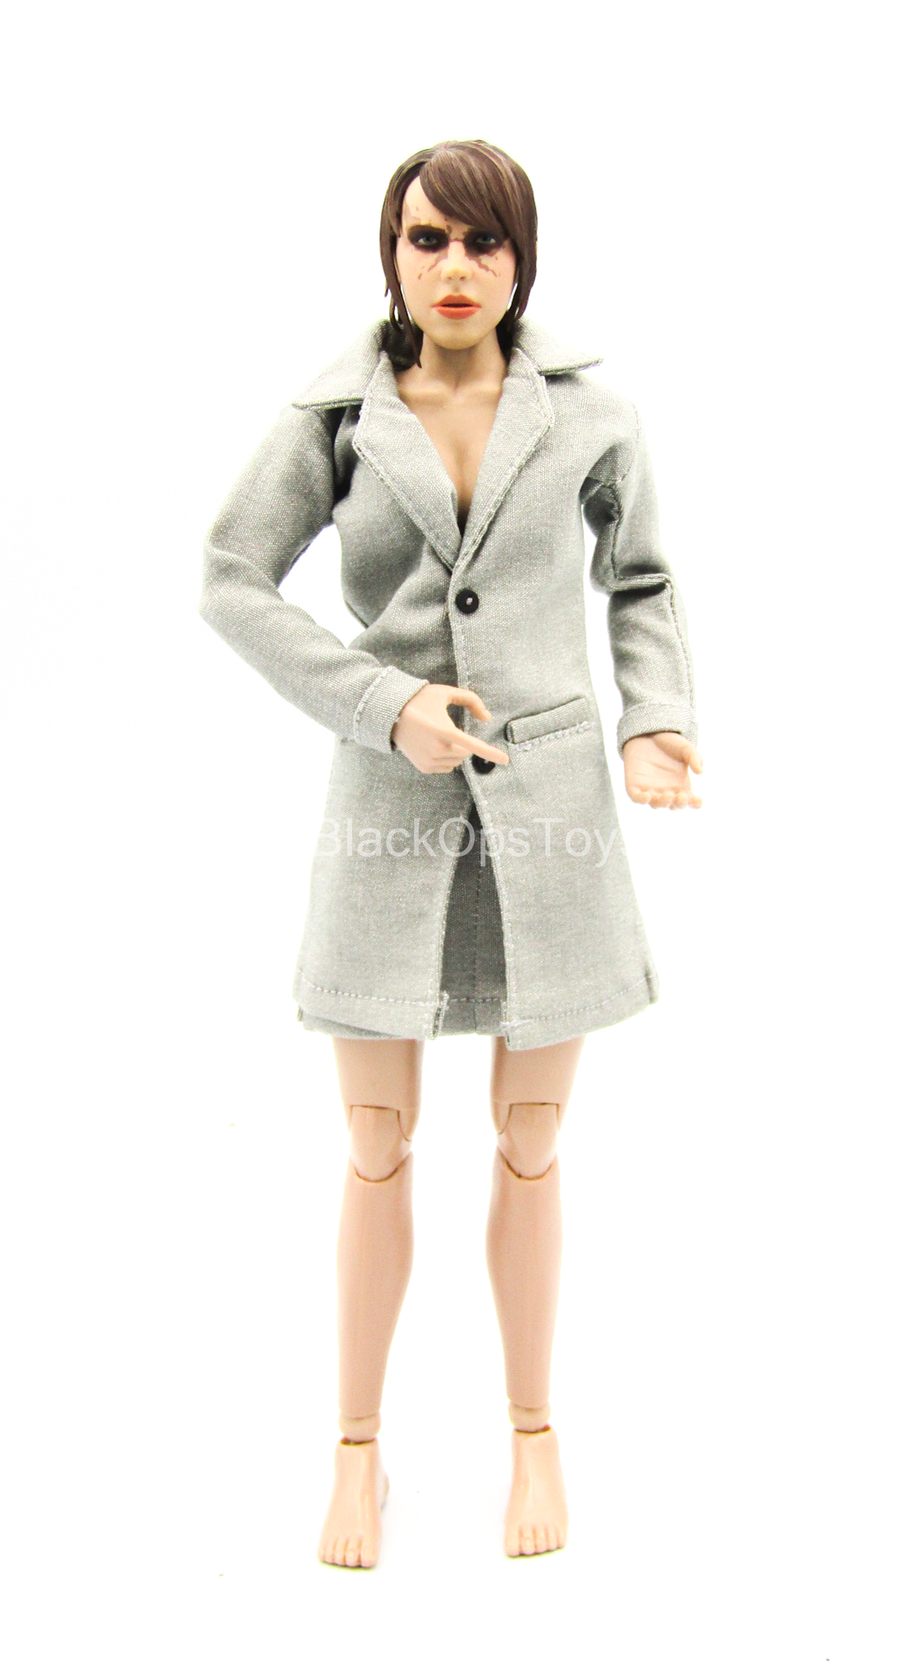 Light Grey Coat w/Light Grey Skirt & Black Undershirt